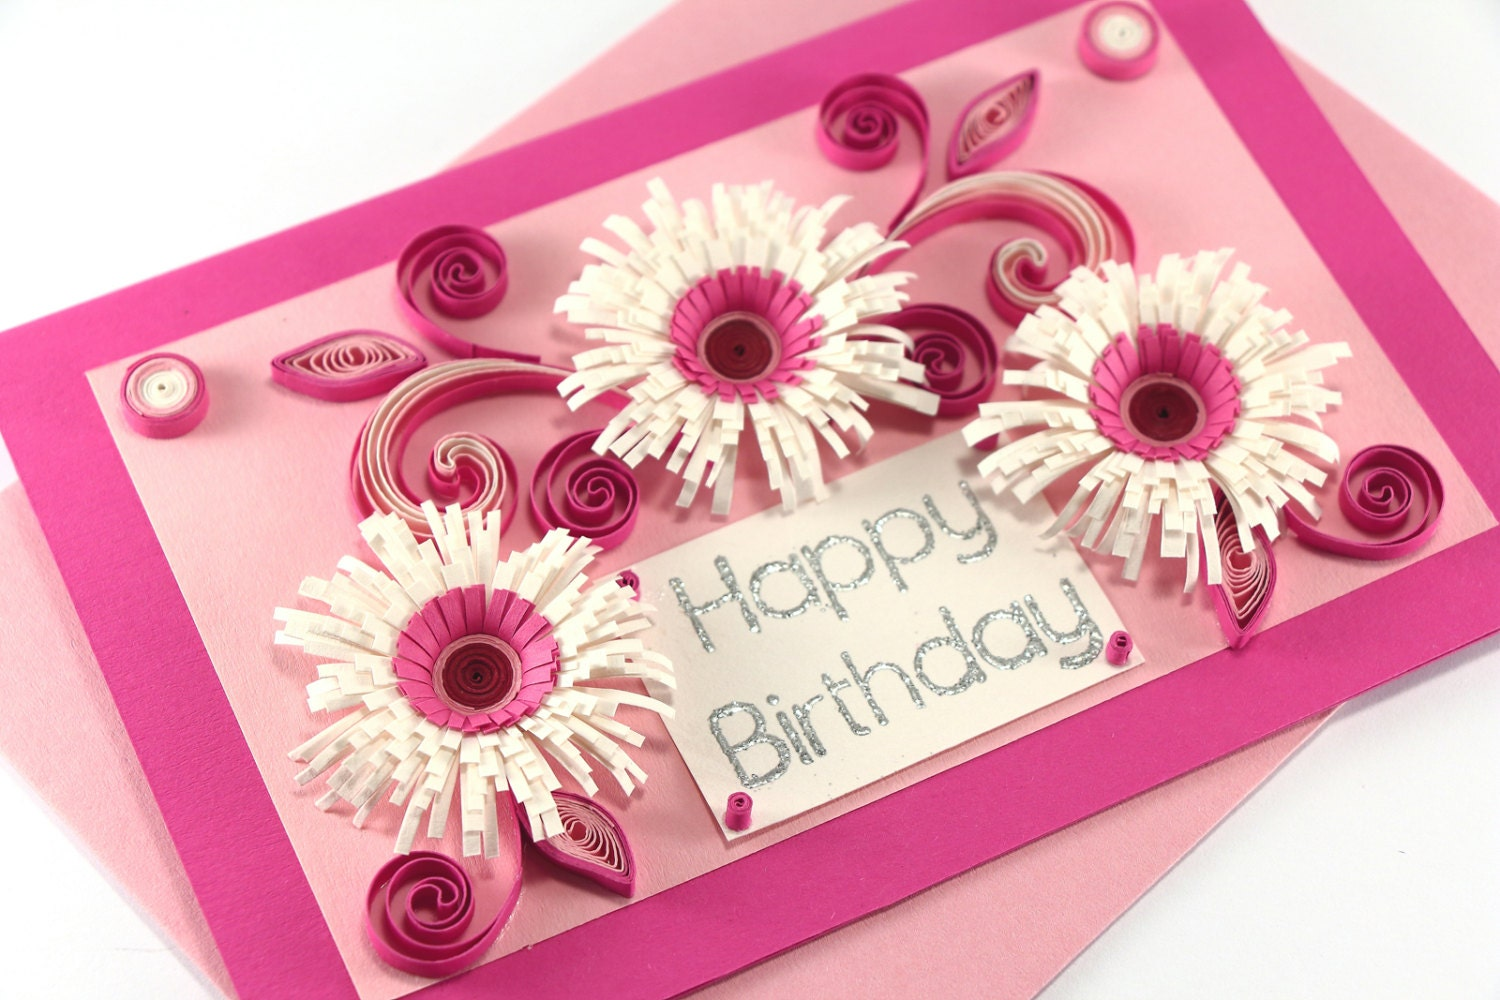 Happy birthday card mom birthday card girlfriend birthday zoom dhlflorist Choice Image